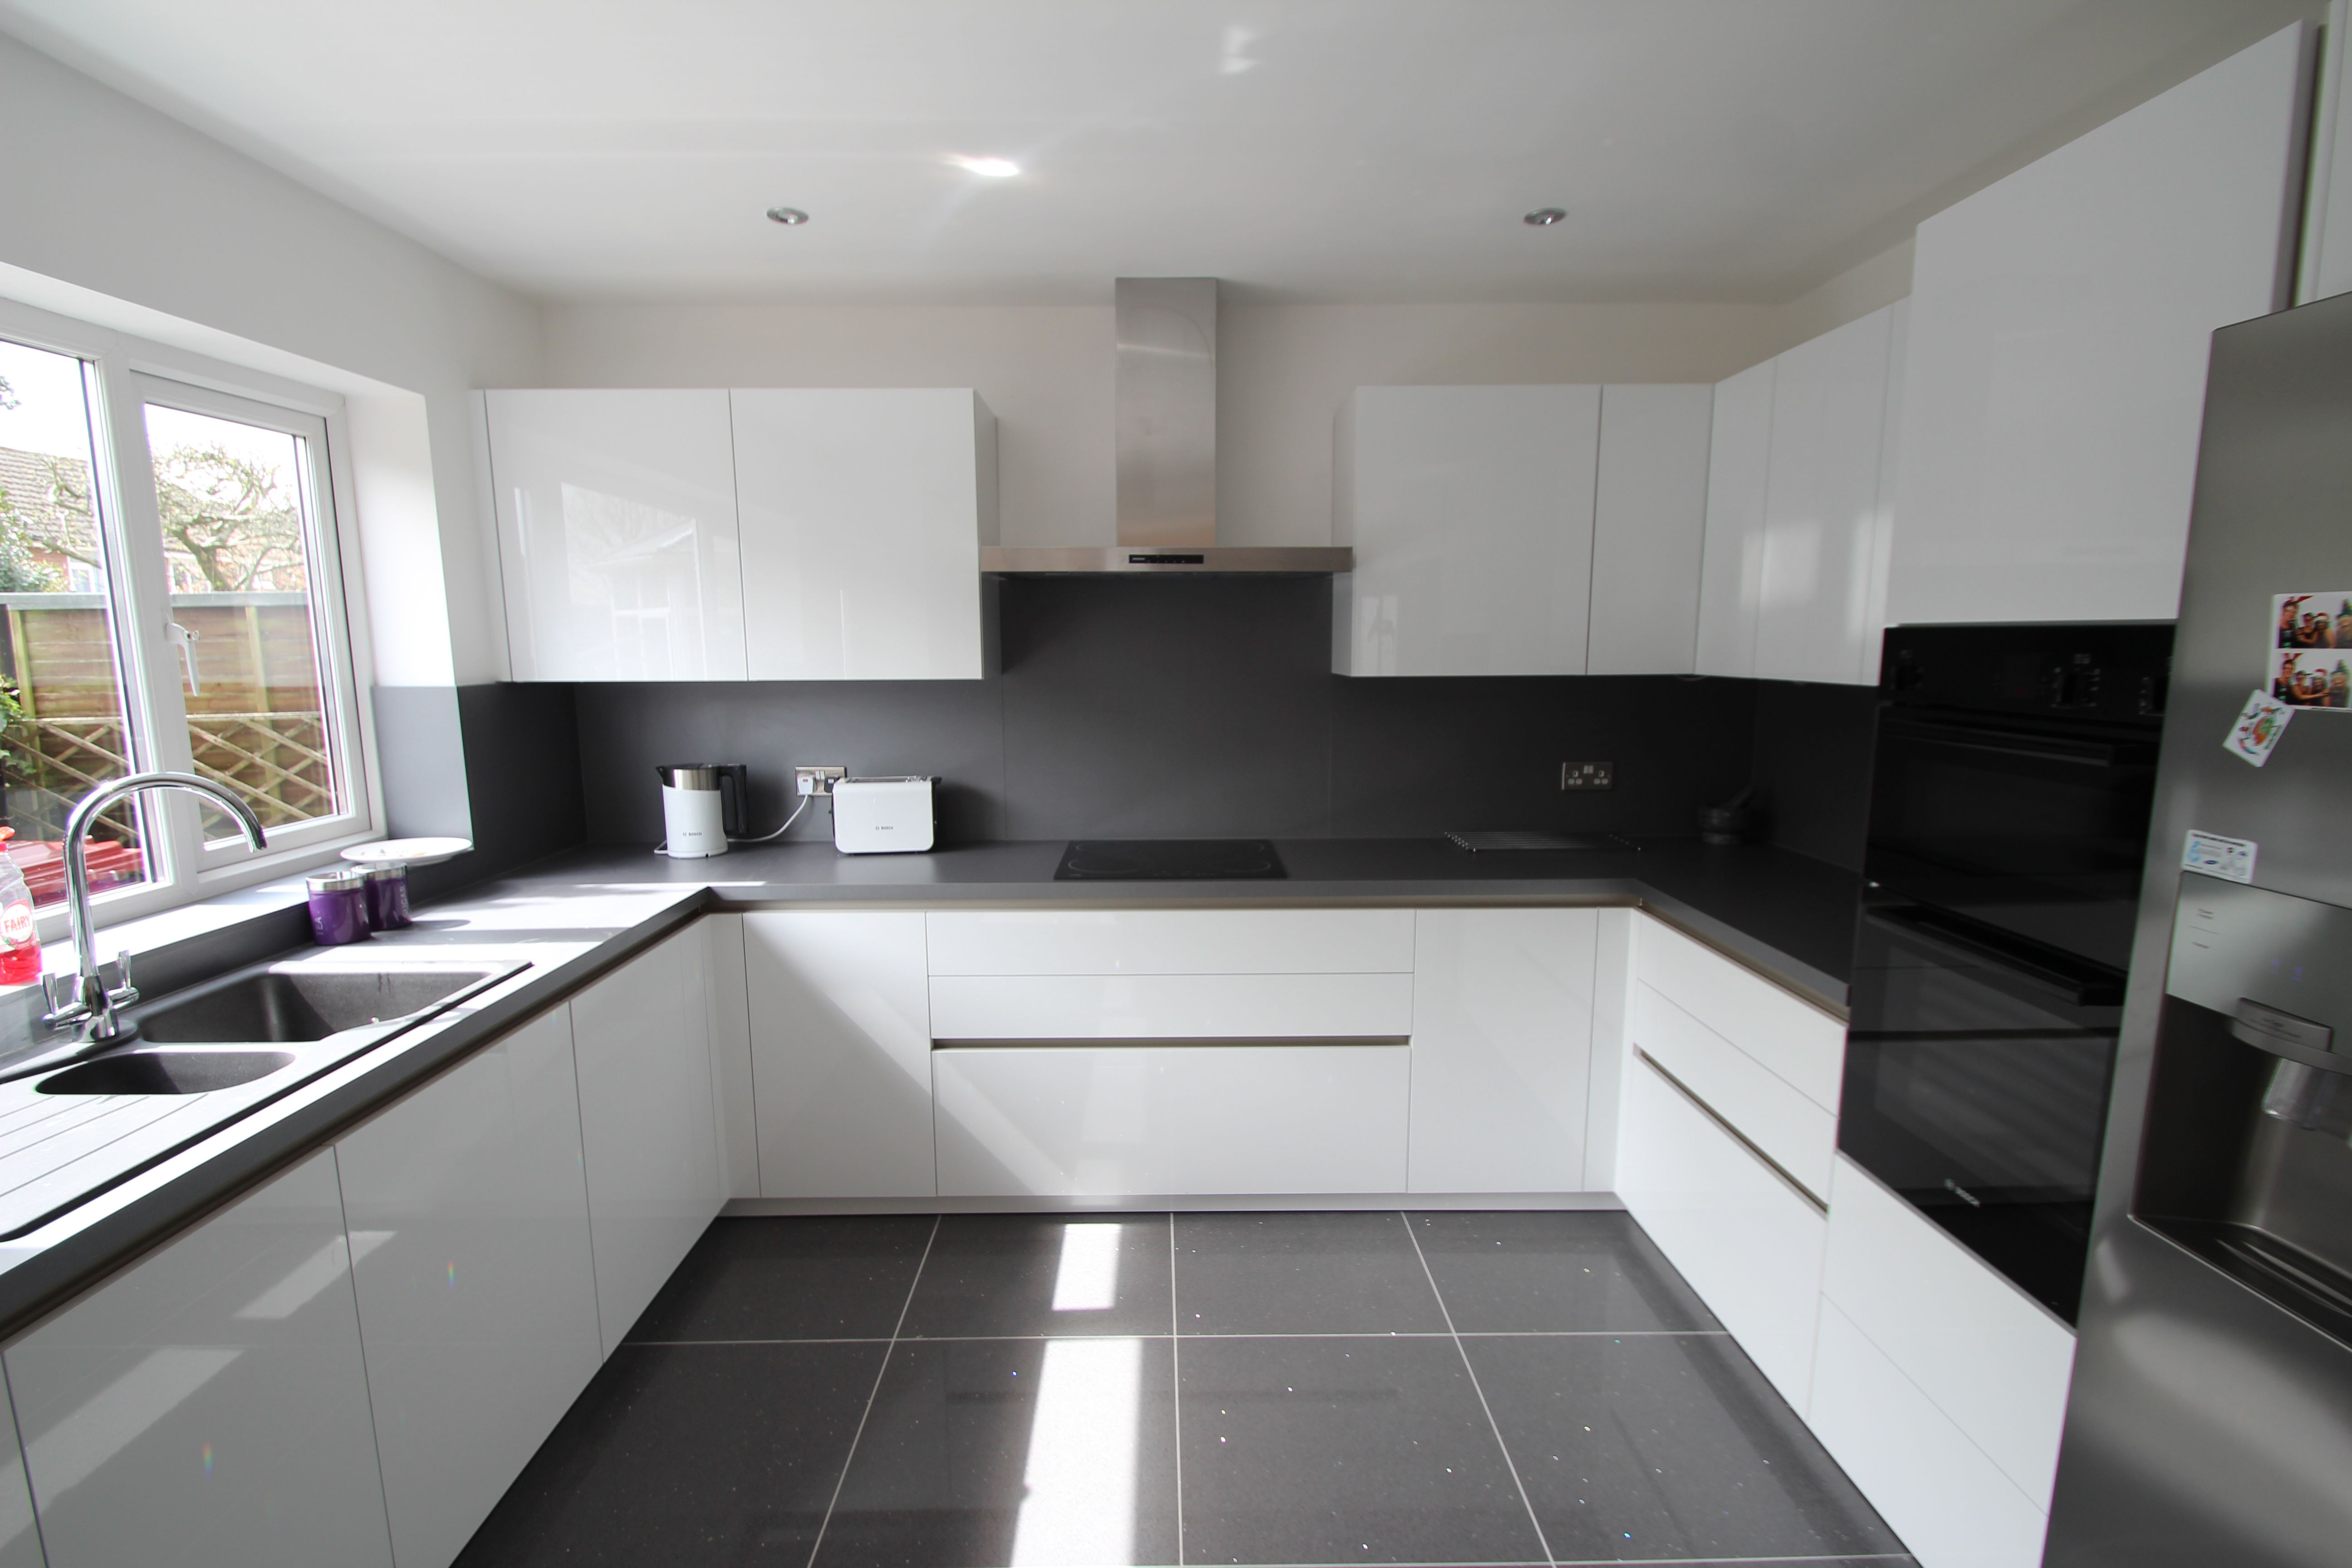 Schuller white gloss kitchen designed and installed by AD17 Design